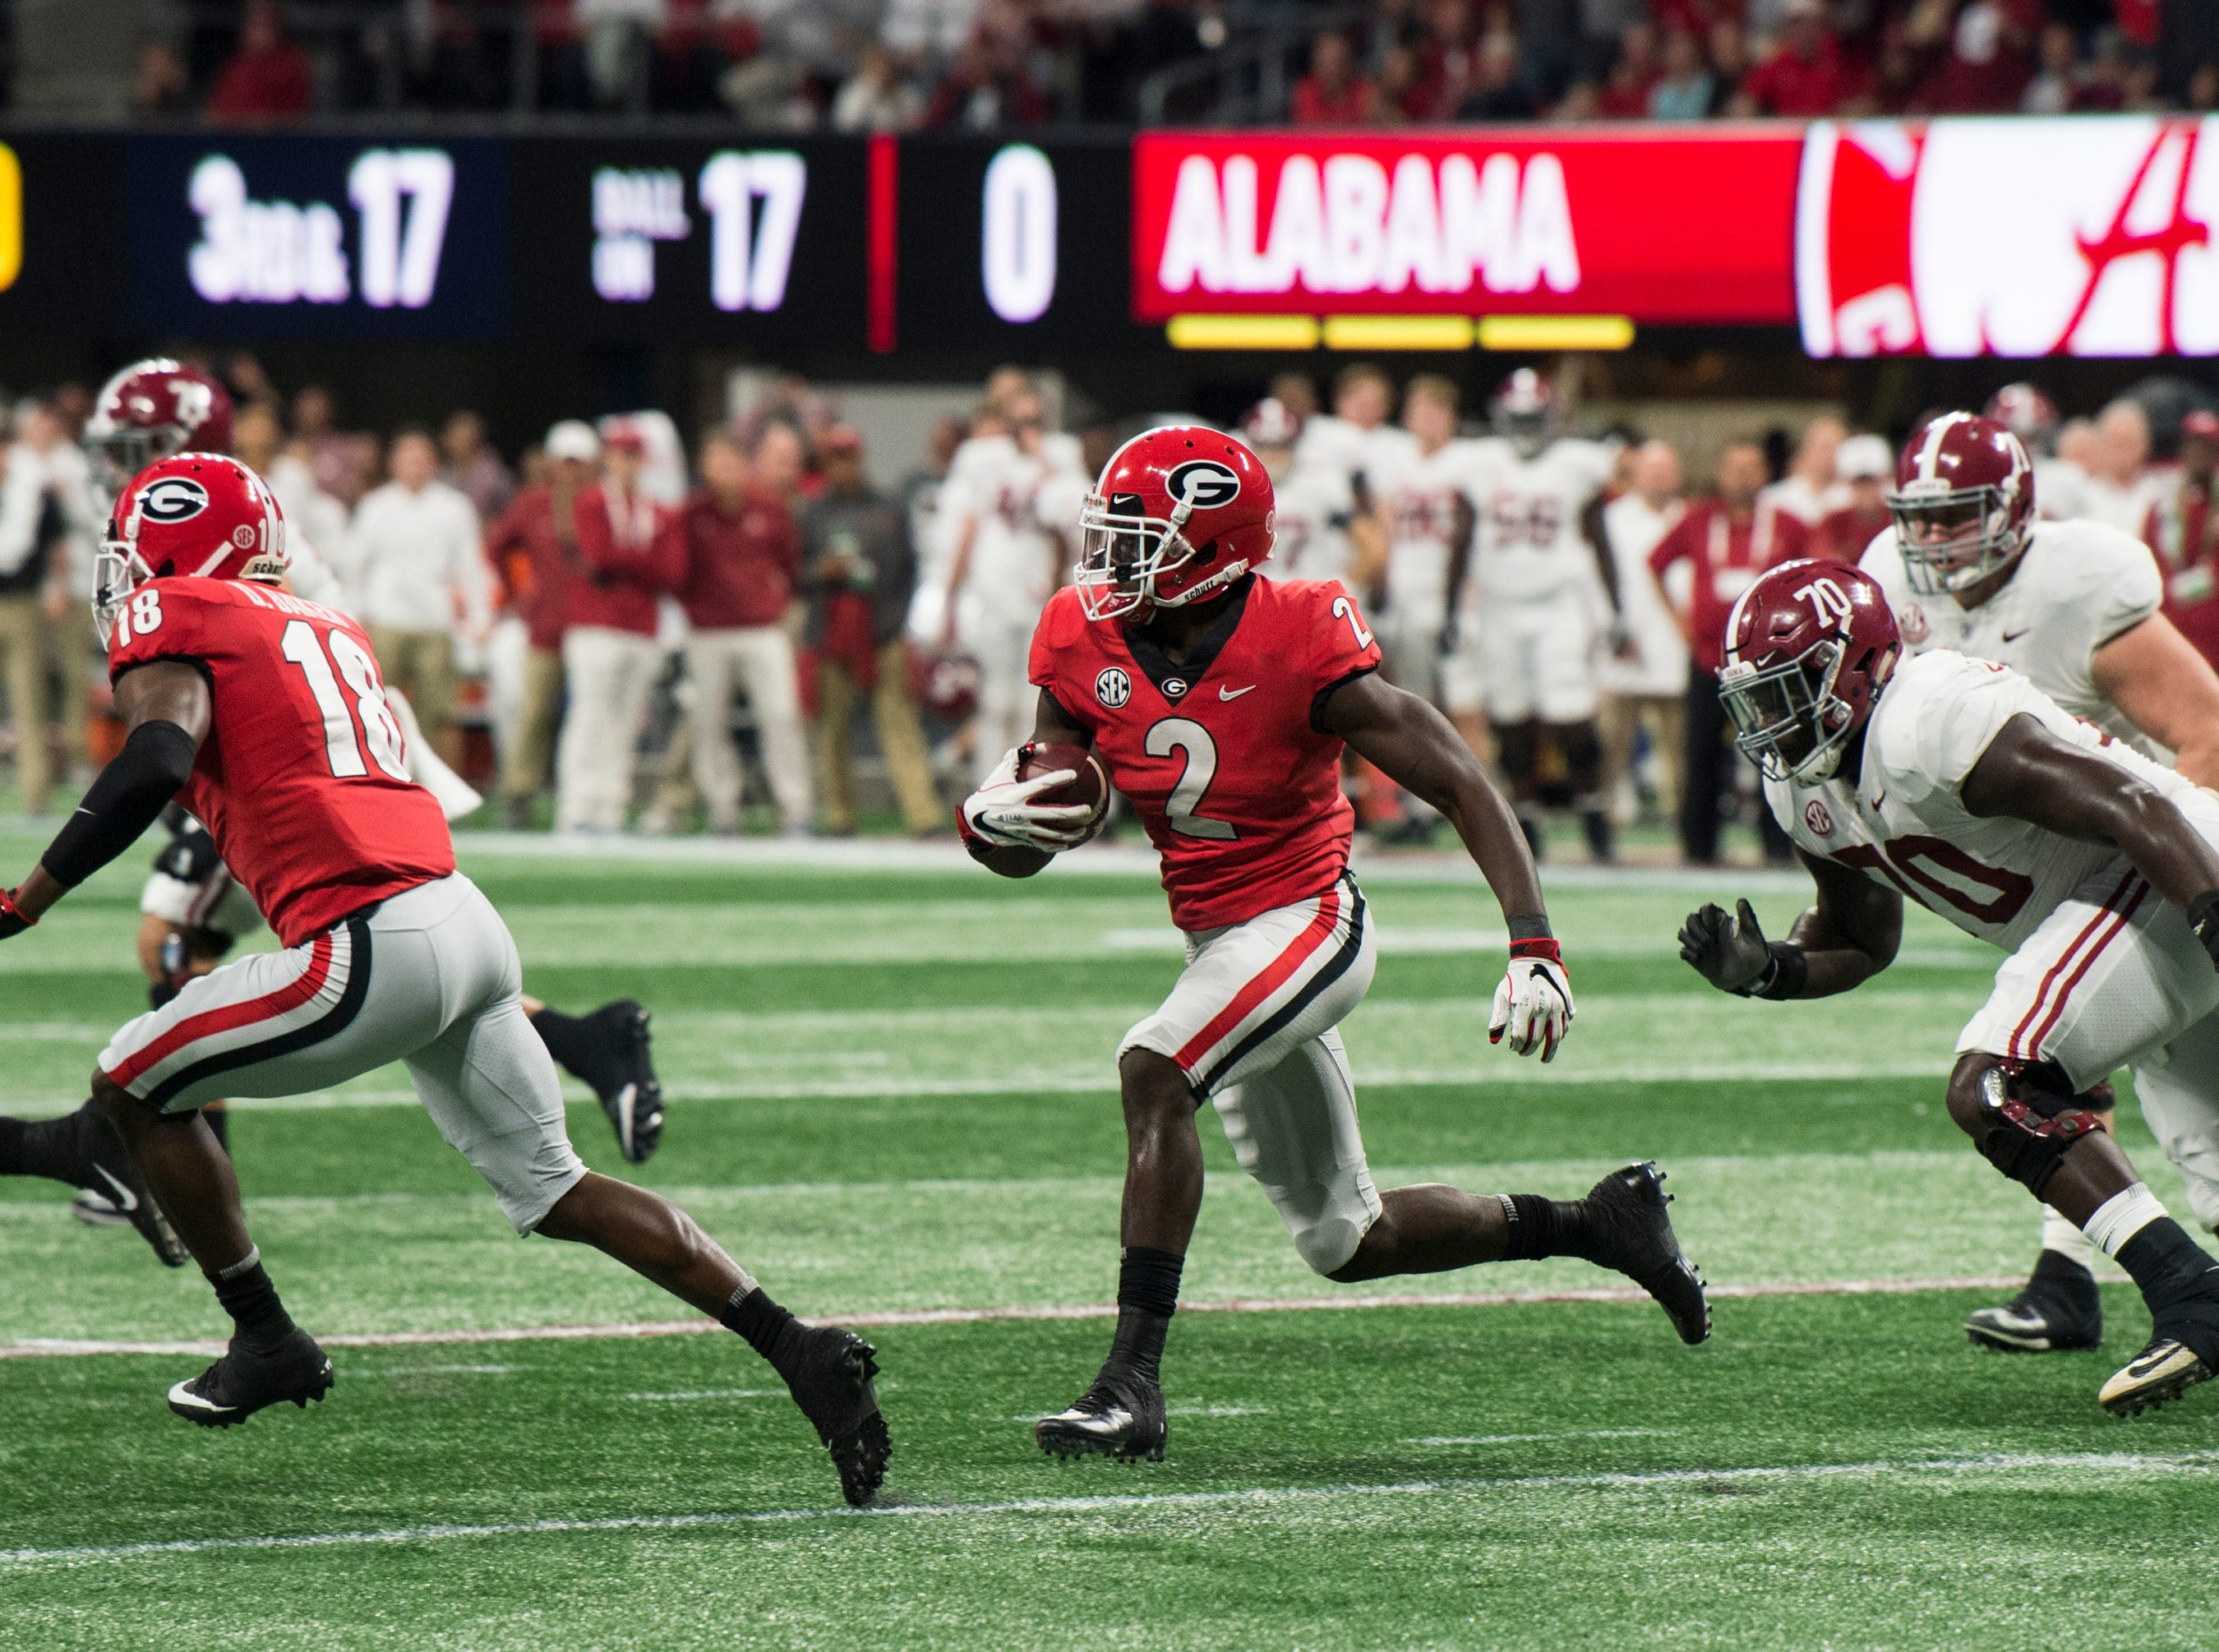 Georgia defensive back Richard LeCounte (2) returns the ball after catching an interception during the SEC Championship game at Mercedes-Benz Stadium in Atlanta, Ga., on Saturday Dec. 1, 2018. Alabama defeated Georgia 35-28.